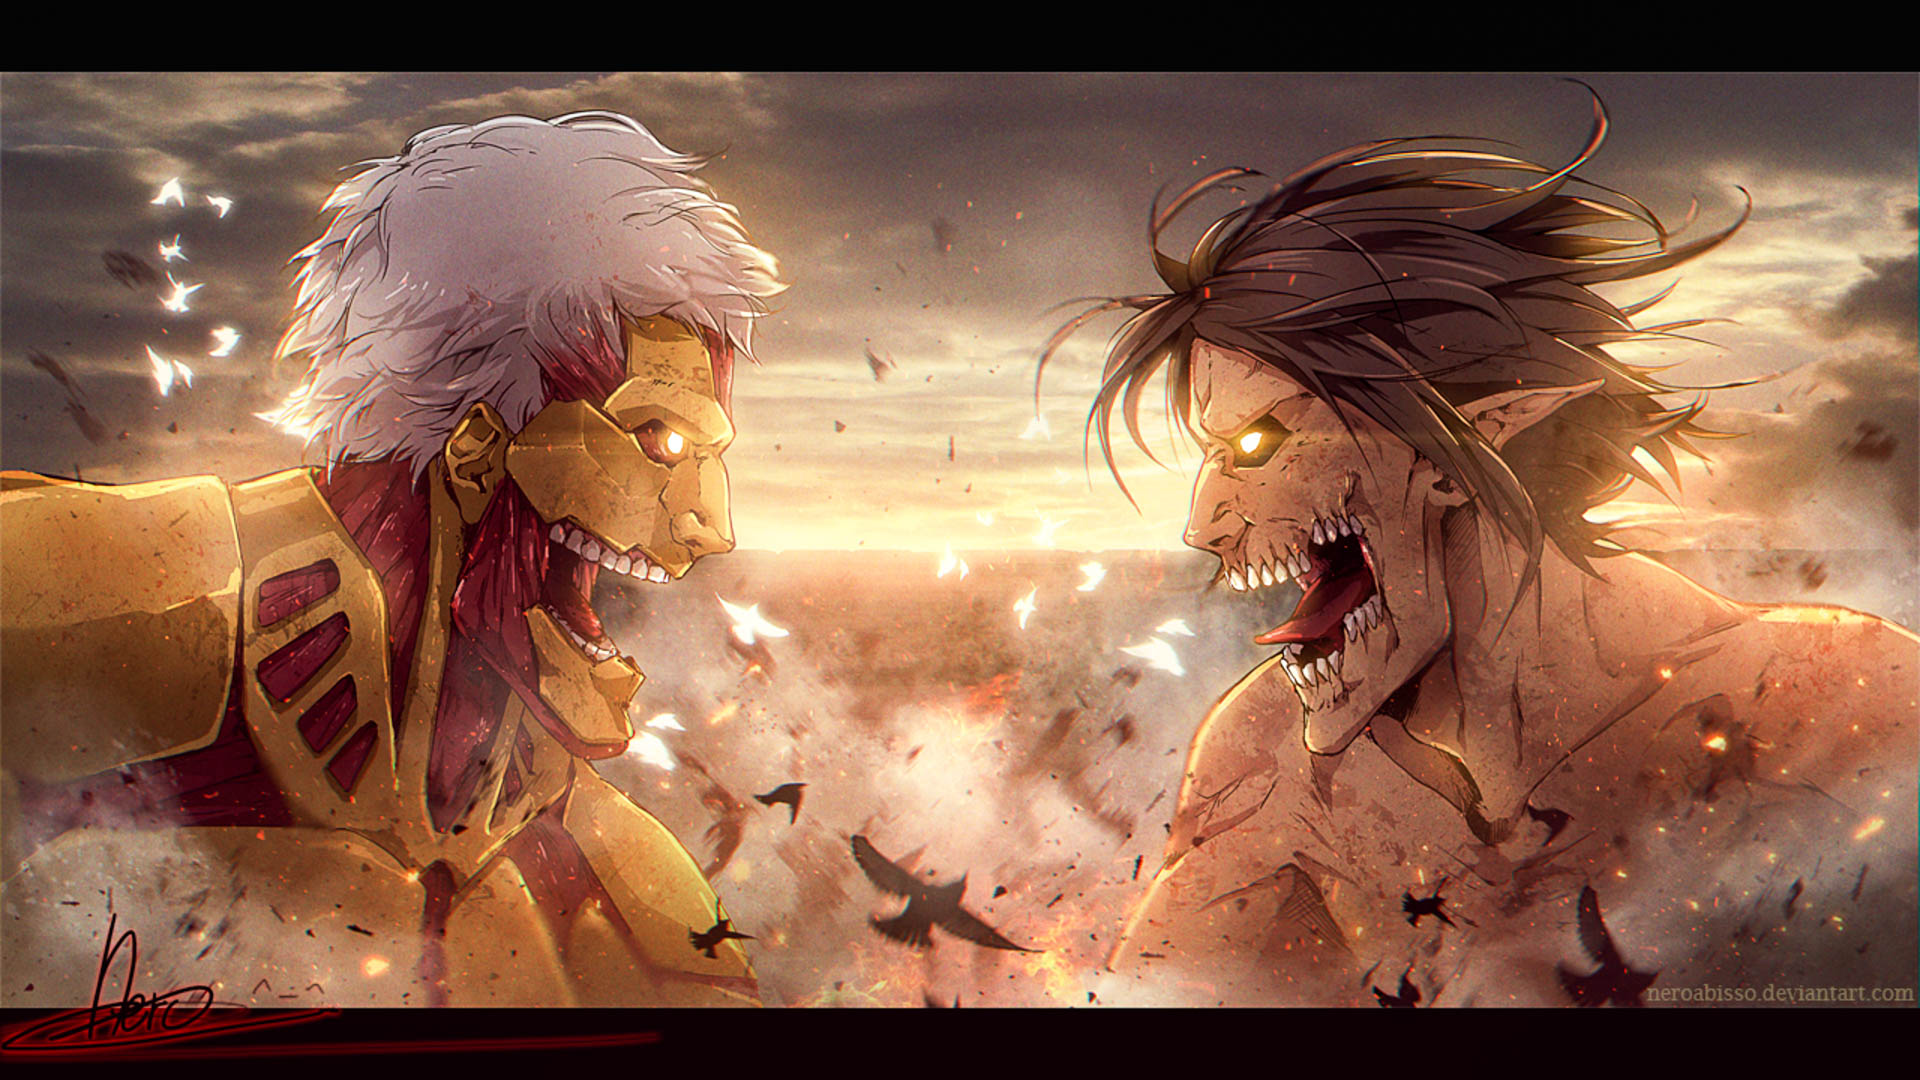 Free Desktop Animated Wallpaper Download Attack On Titan Wallpaper In High Quality All Hd Wallpapers